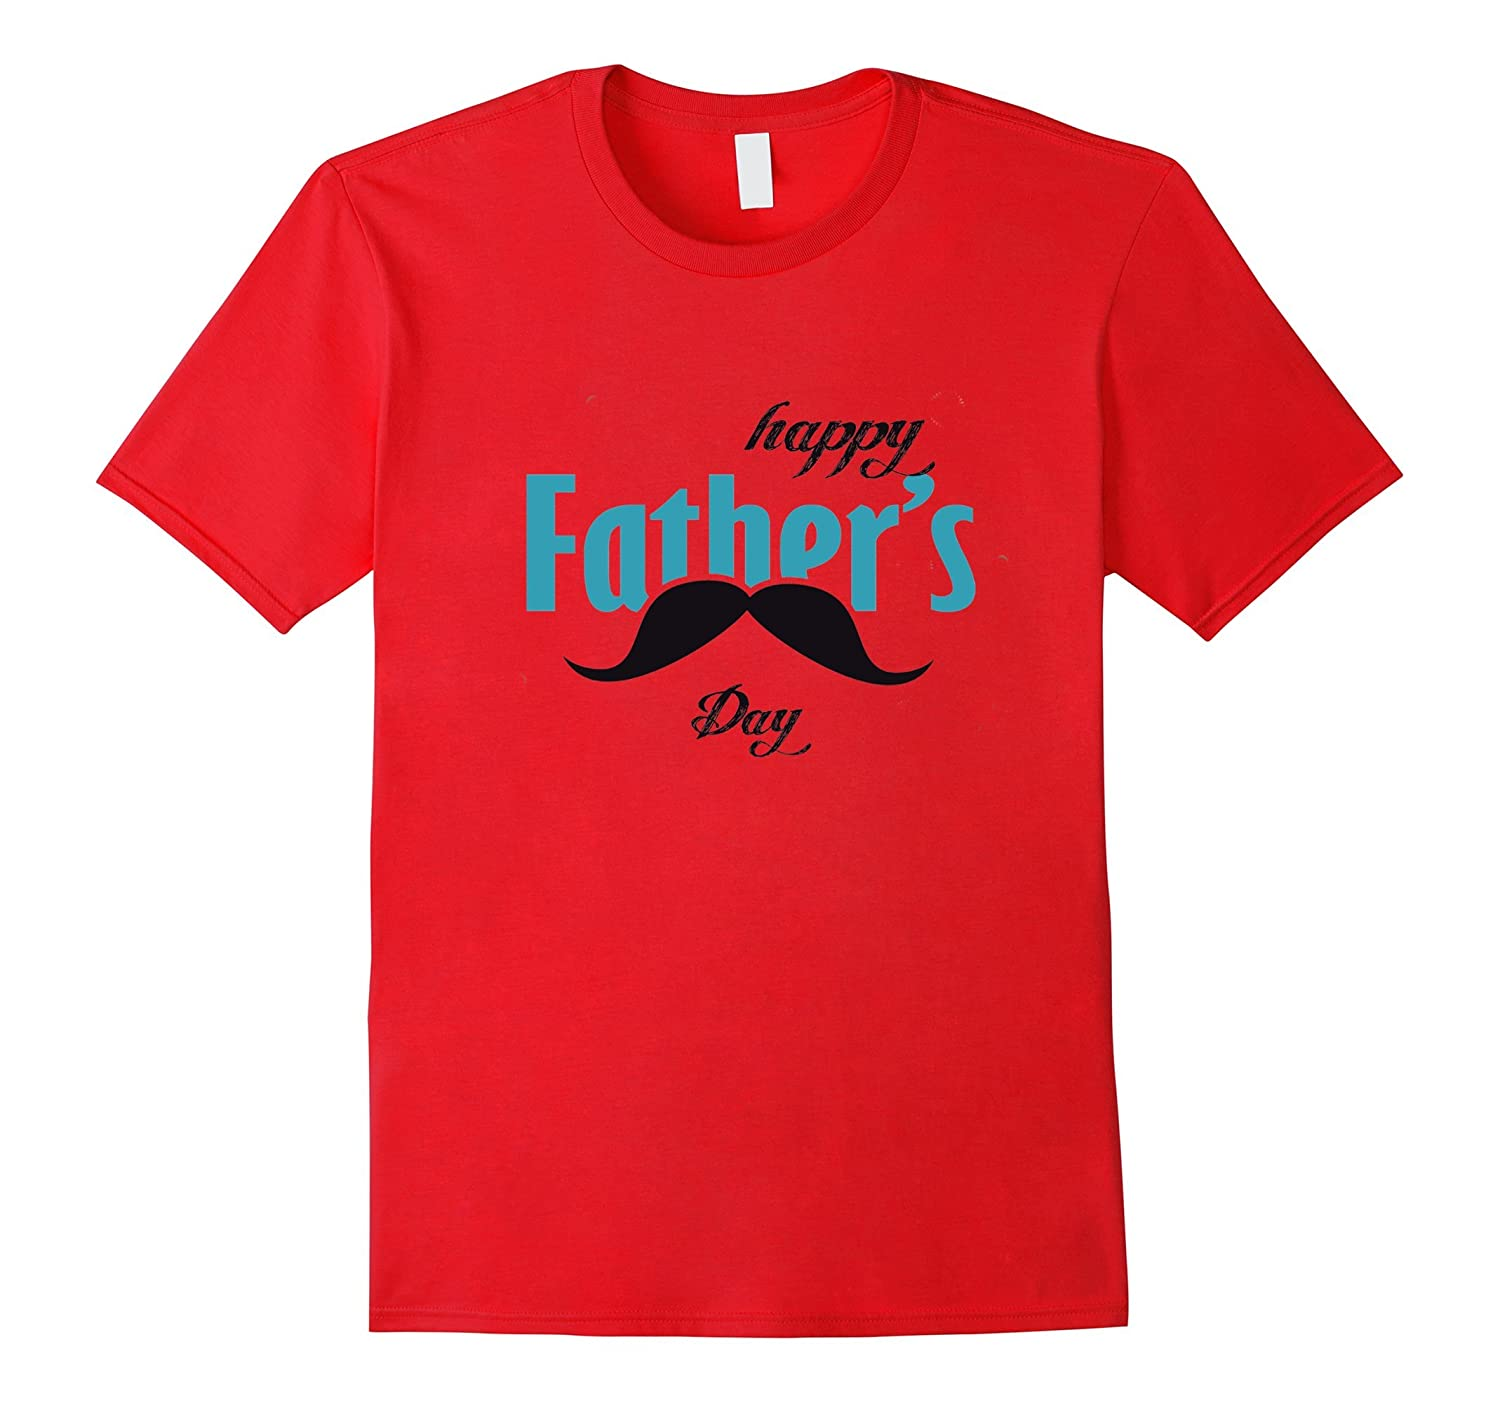 Happy Fathers Day T-Shirt Celebrates Truly Great Dads-TH